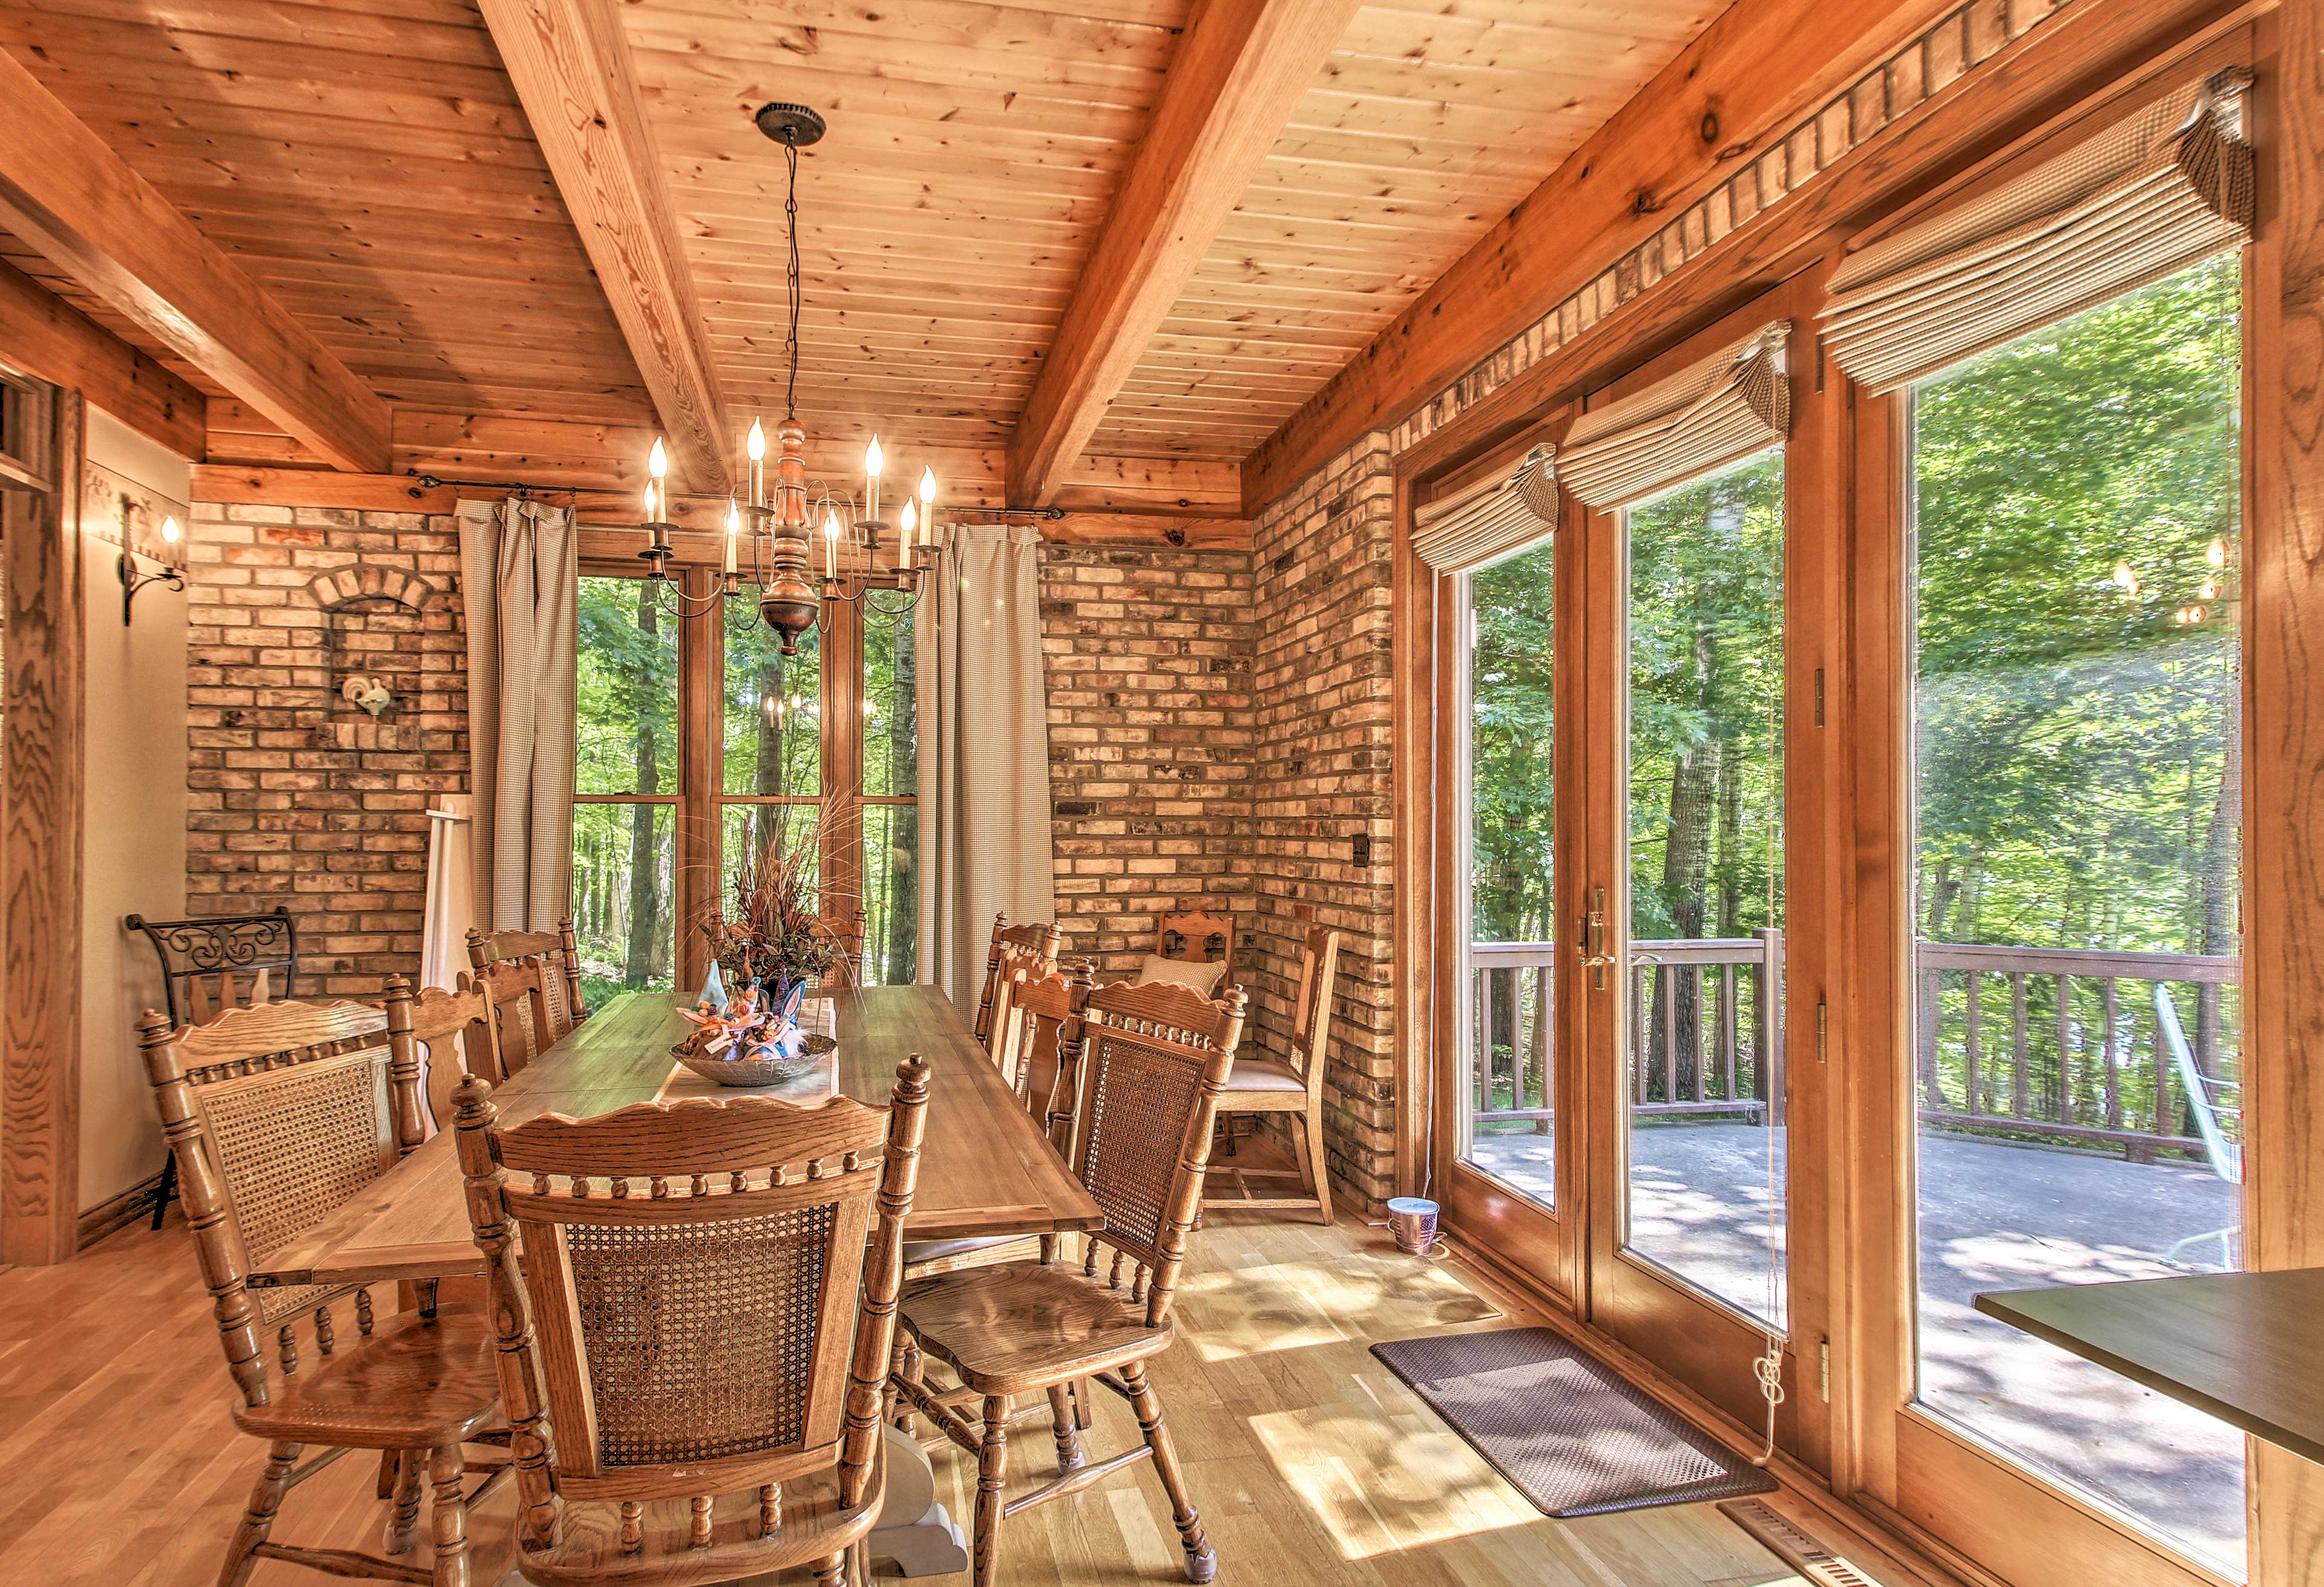 Elegant stone walls surround the dining room's 10-seat table.